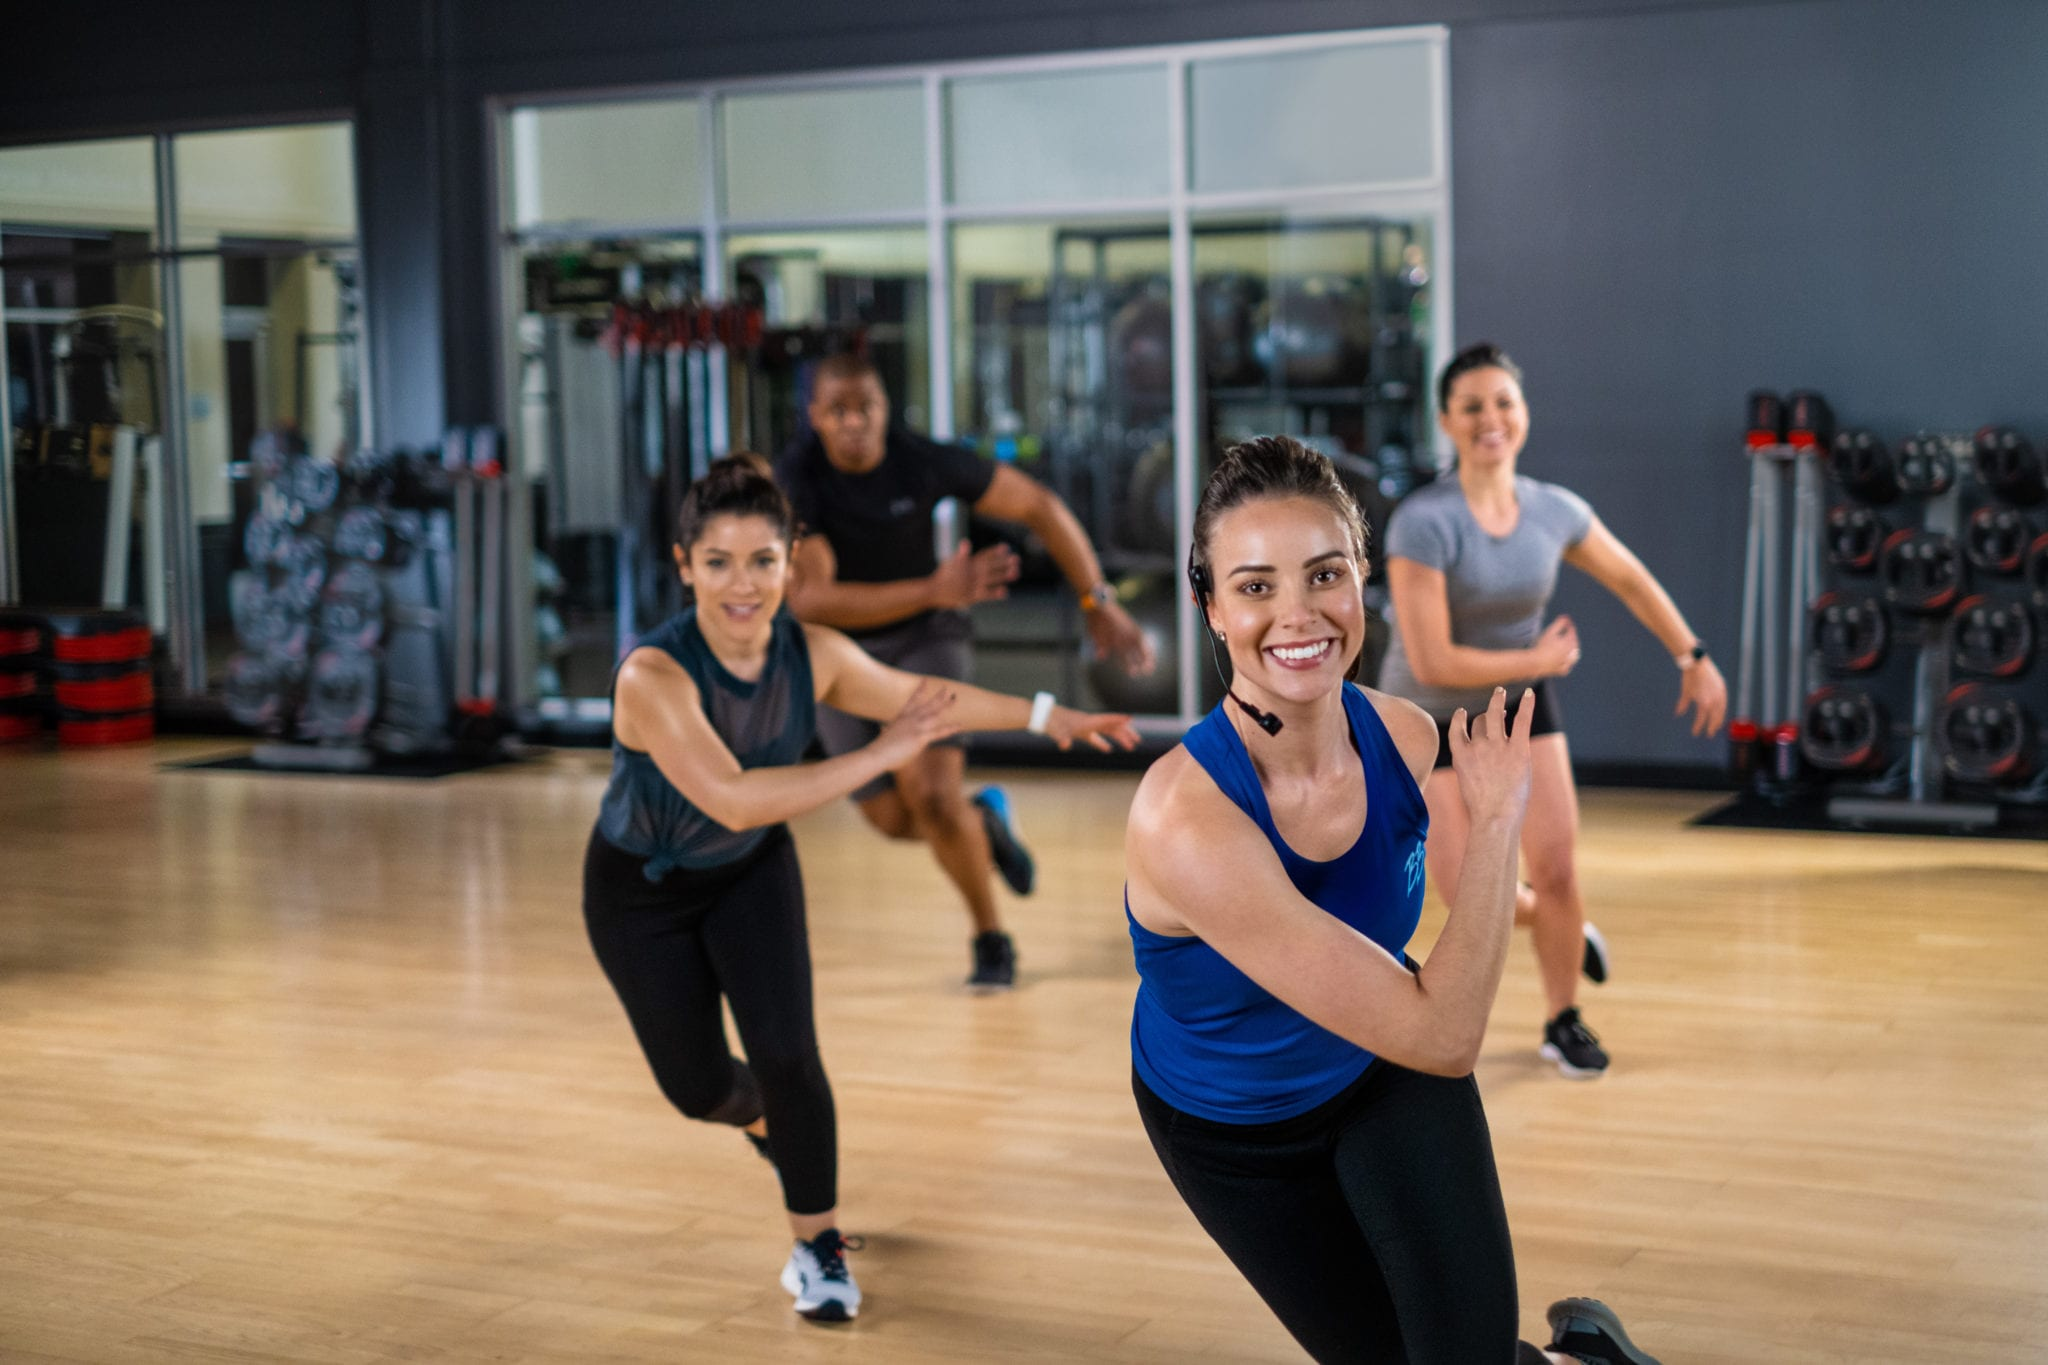 group instructor performing skate movement in fitness class at padonia gym studio